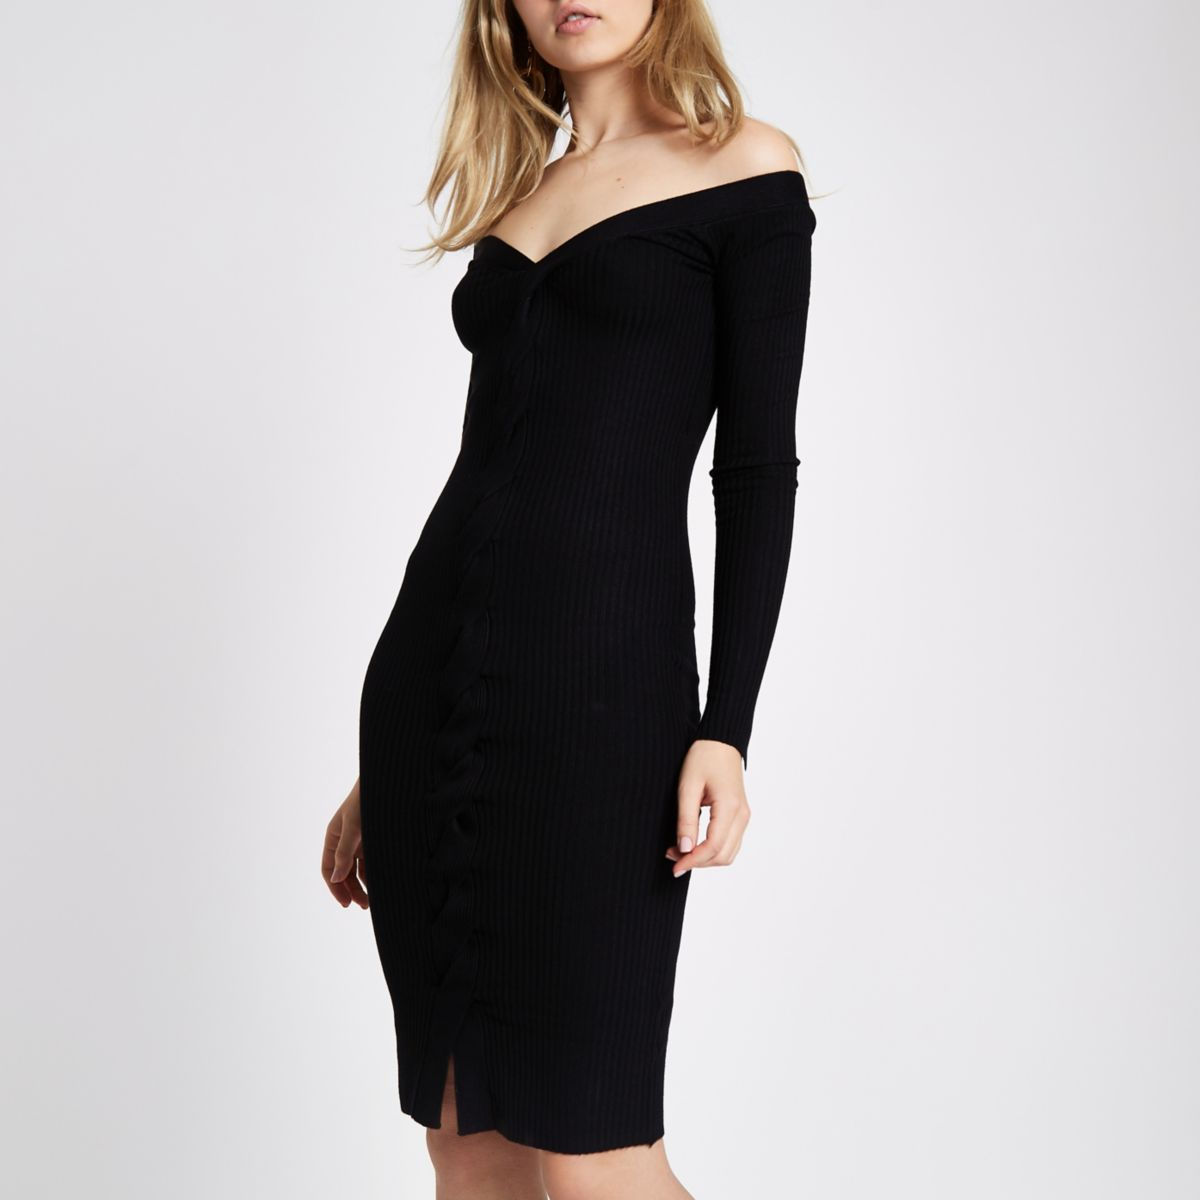 Black cable knit cut out midi dress